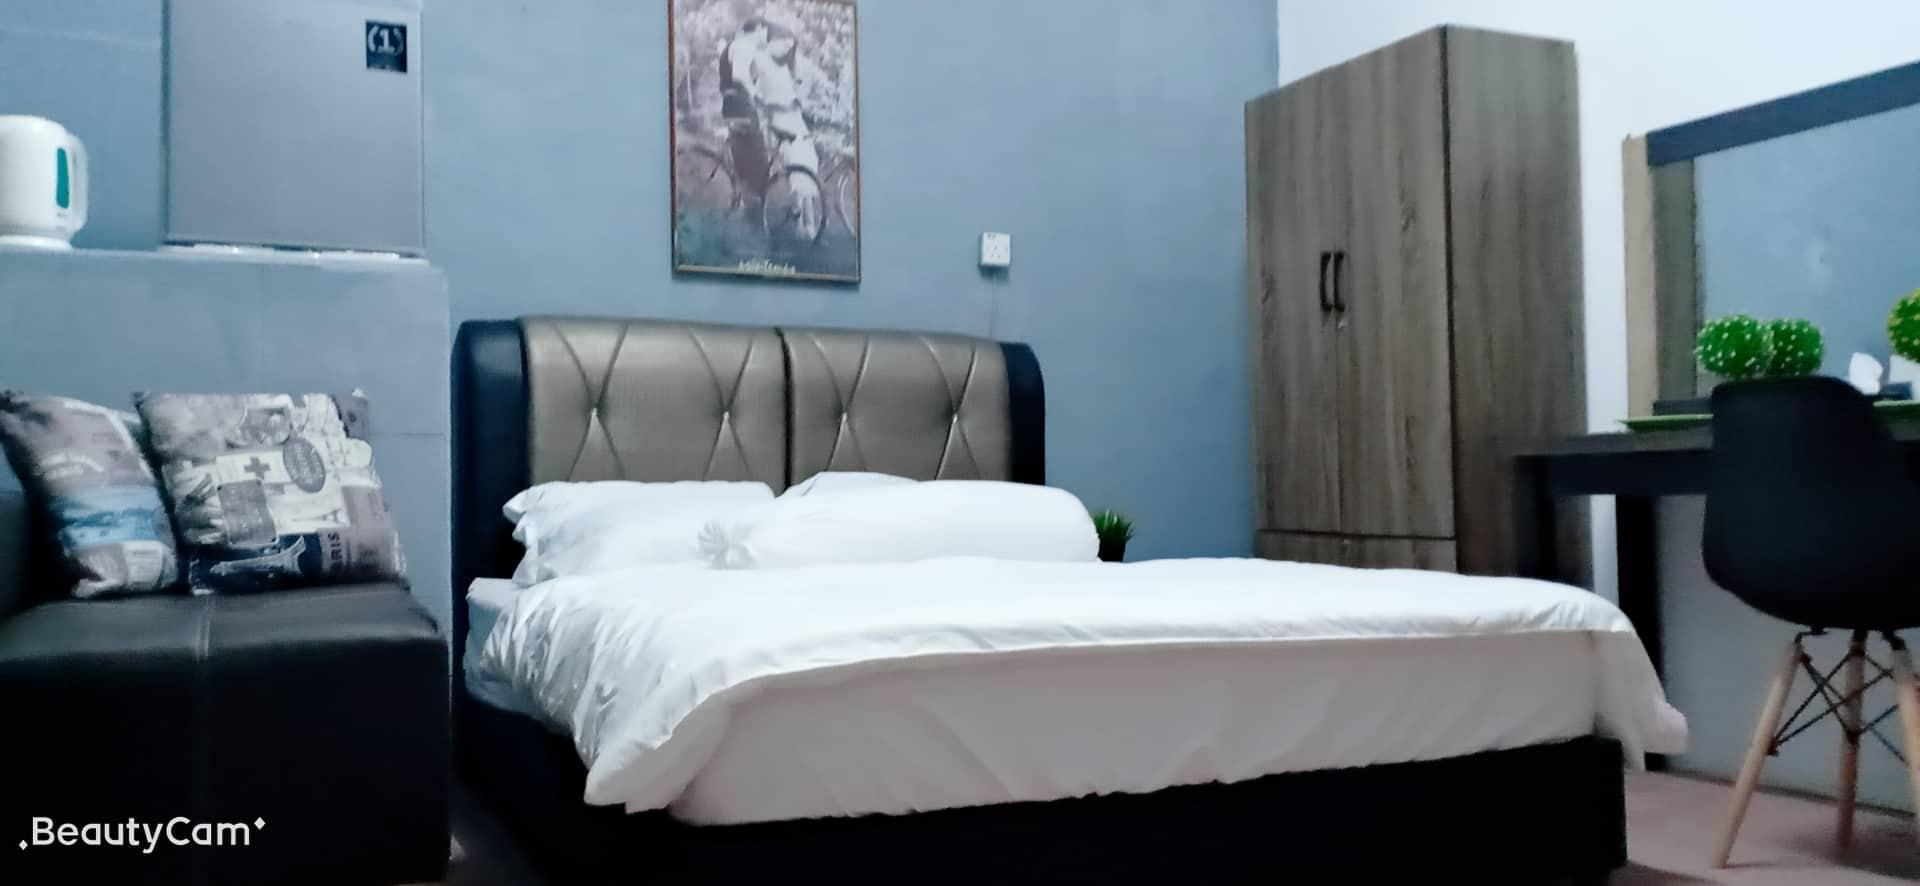 79 PRIVACY ROOM @ MANJUNG HOMESTAY#FREEWIFI#4PAX#